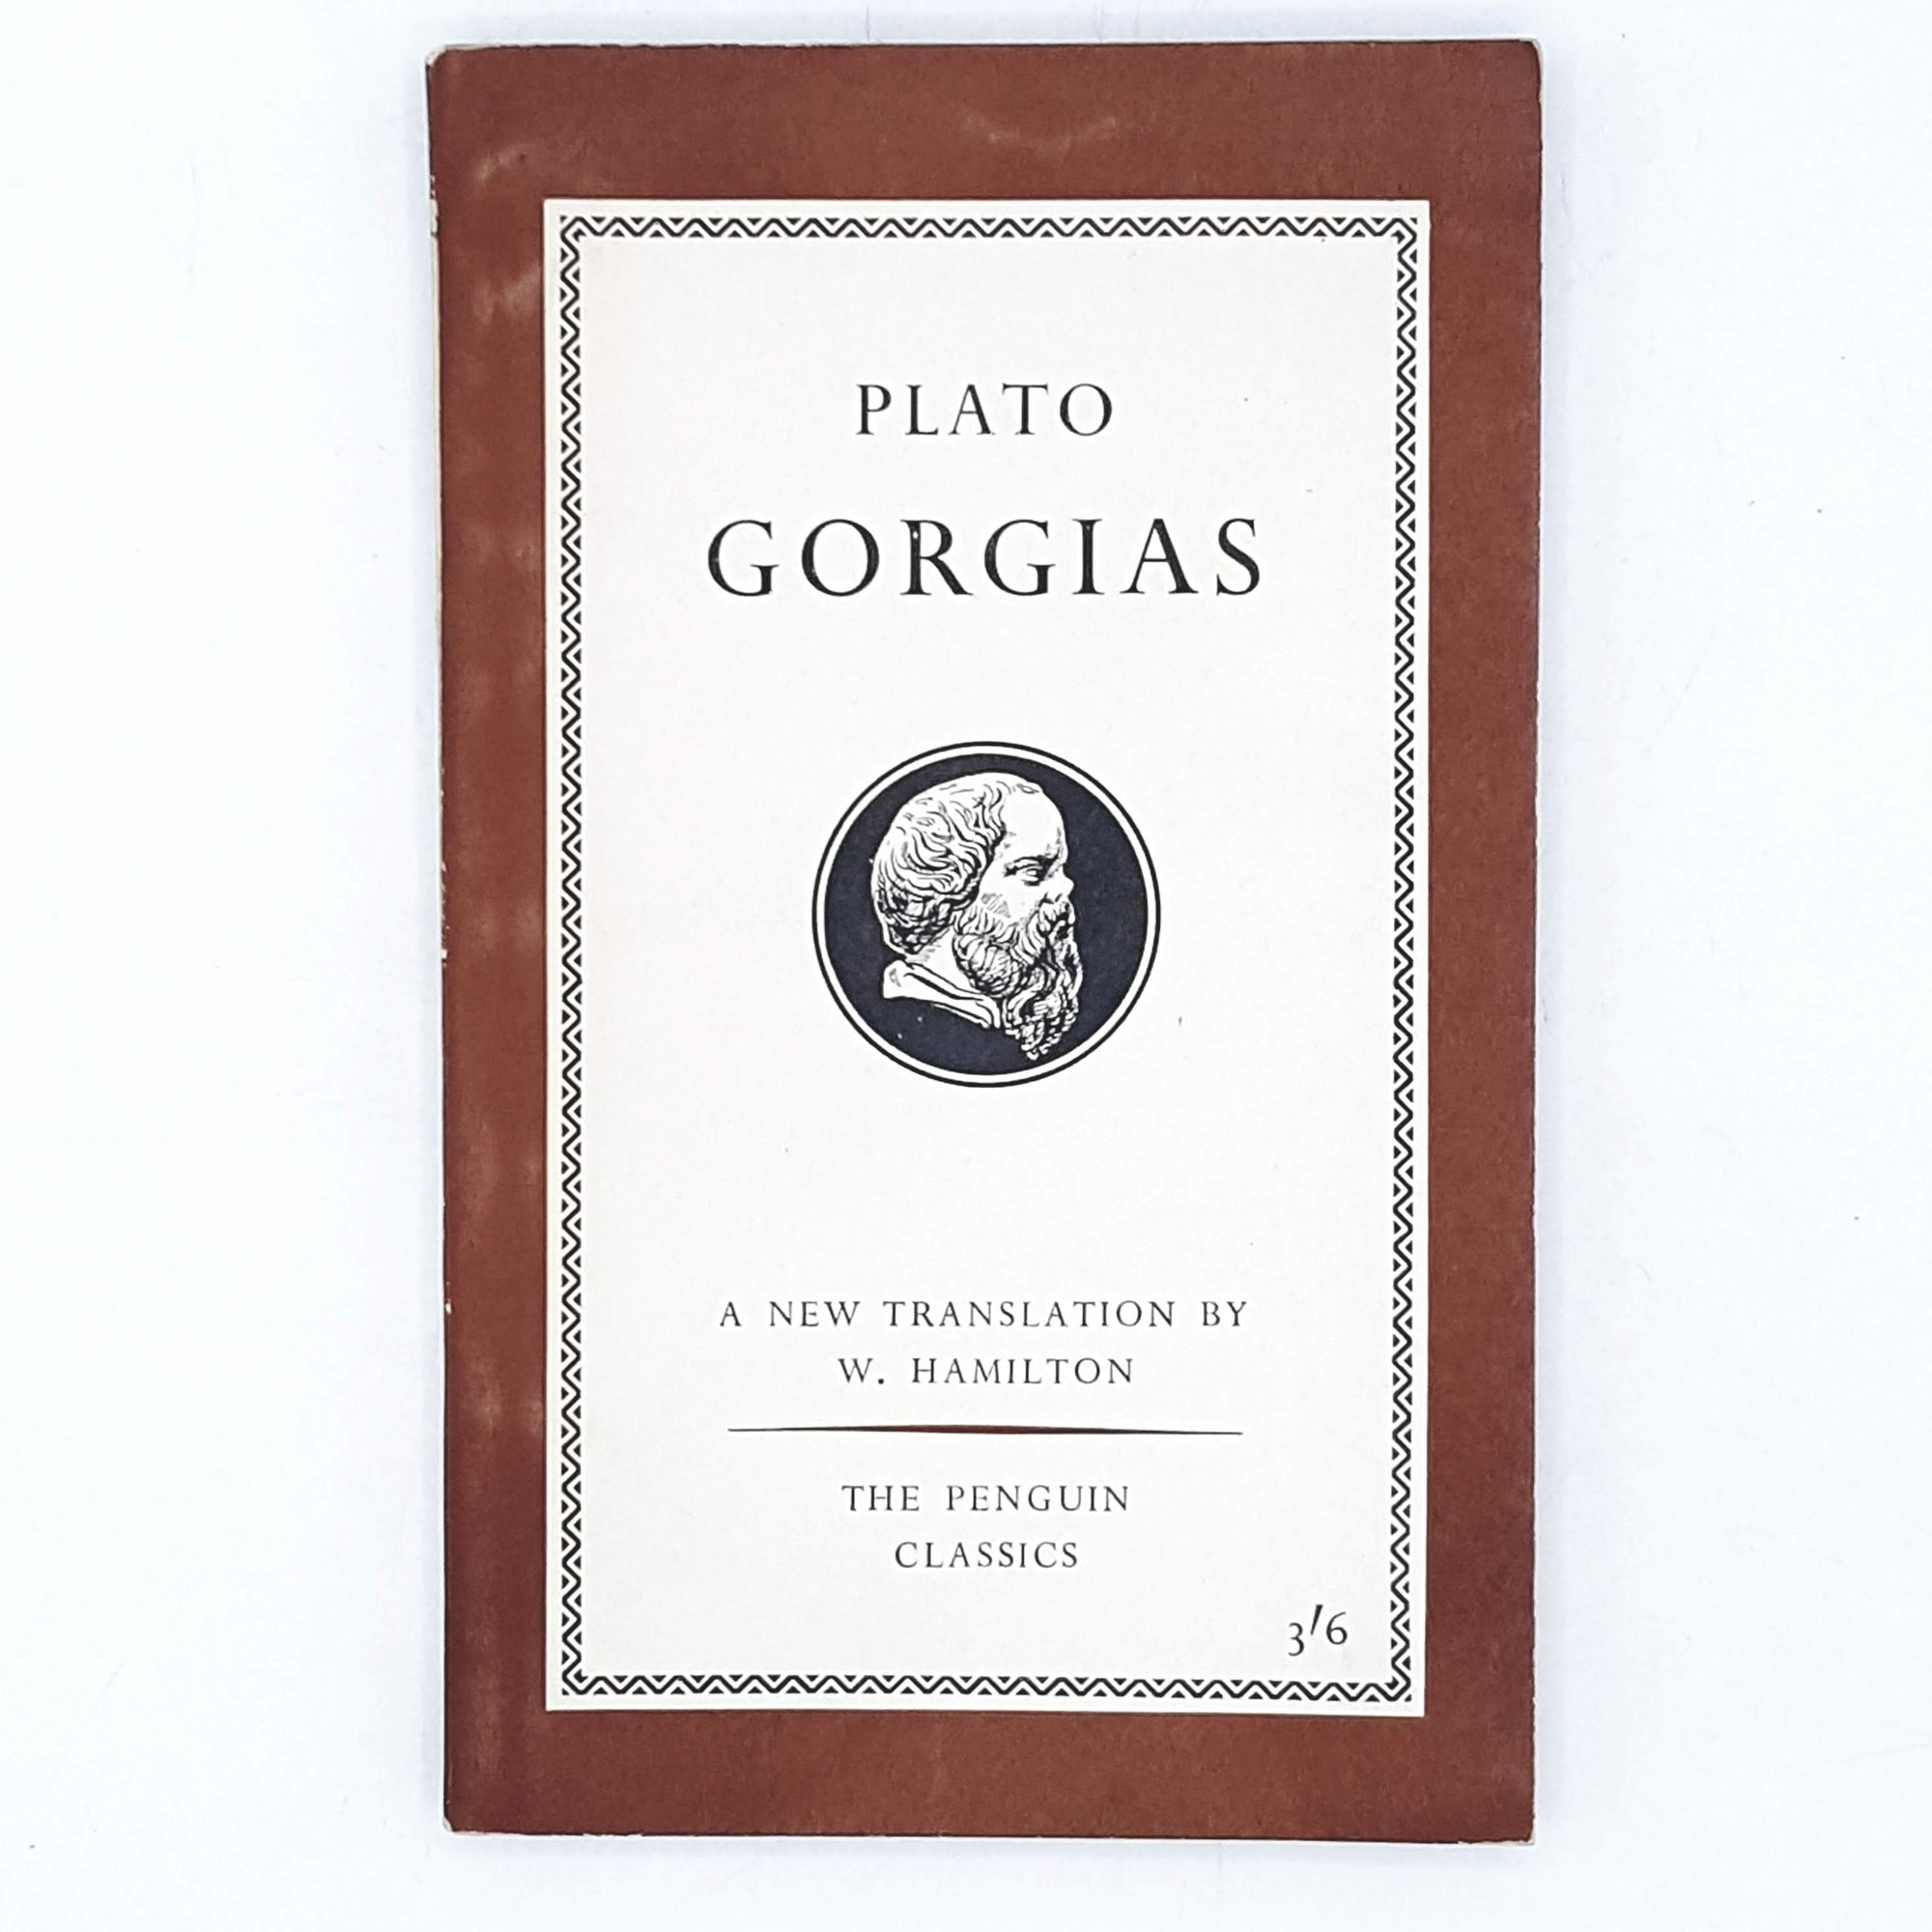 First Edition Penguin: Plato's Gorgias 1960